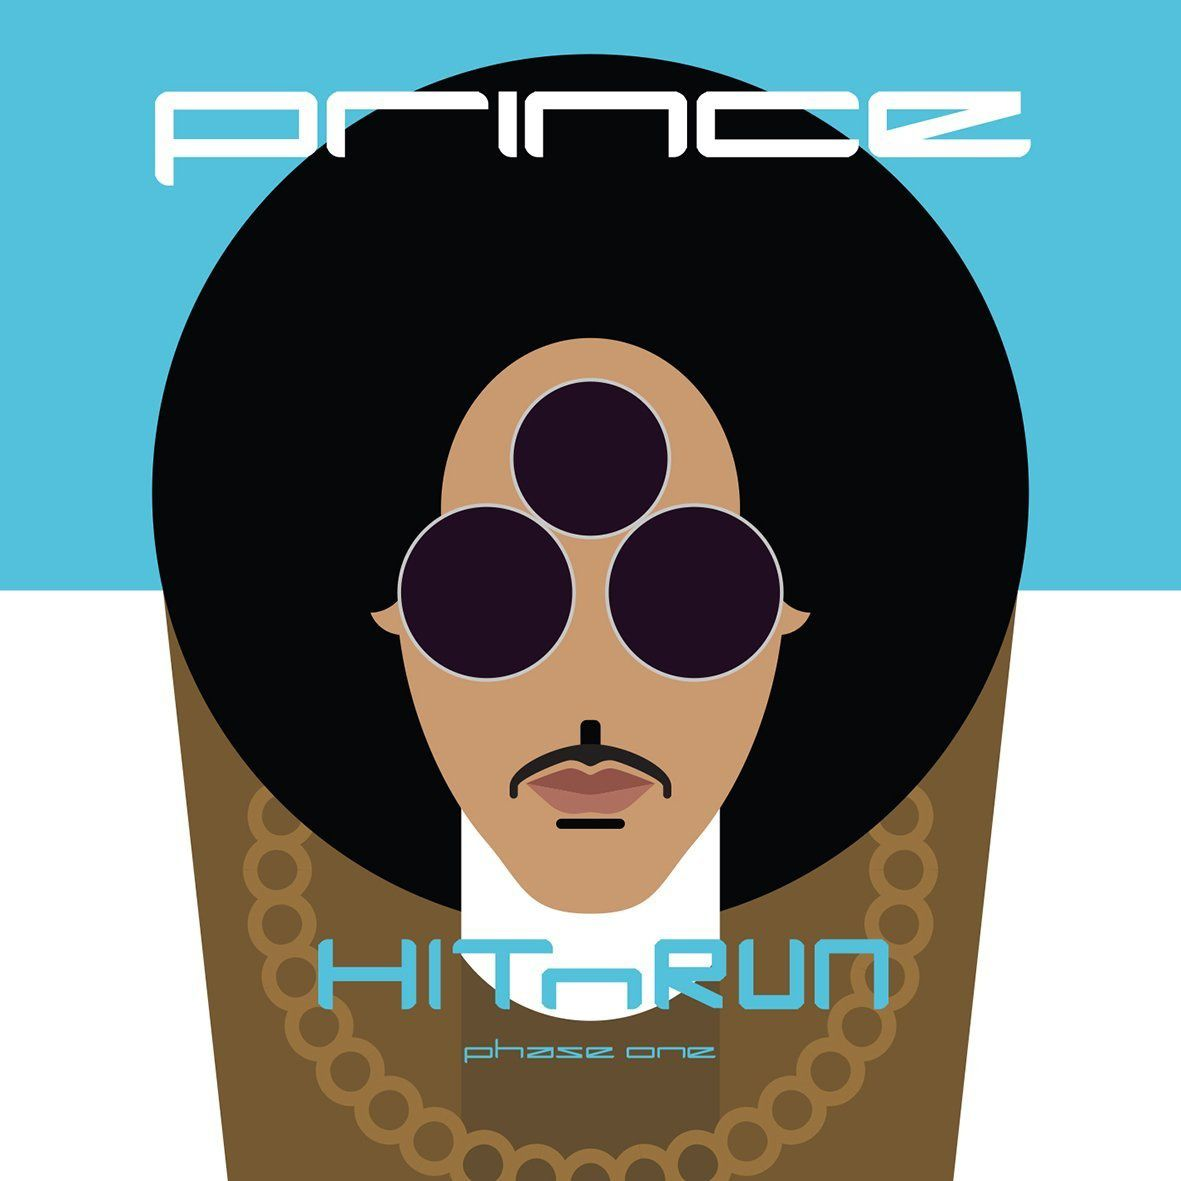 Chronique Hit n Run de Prince